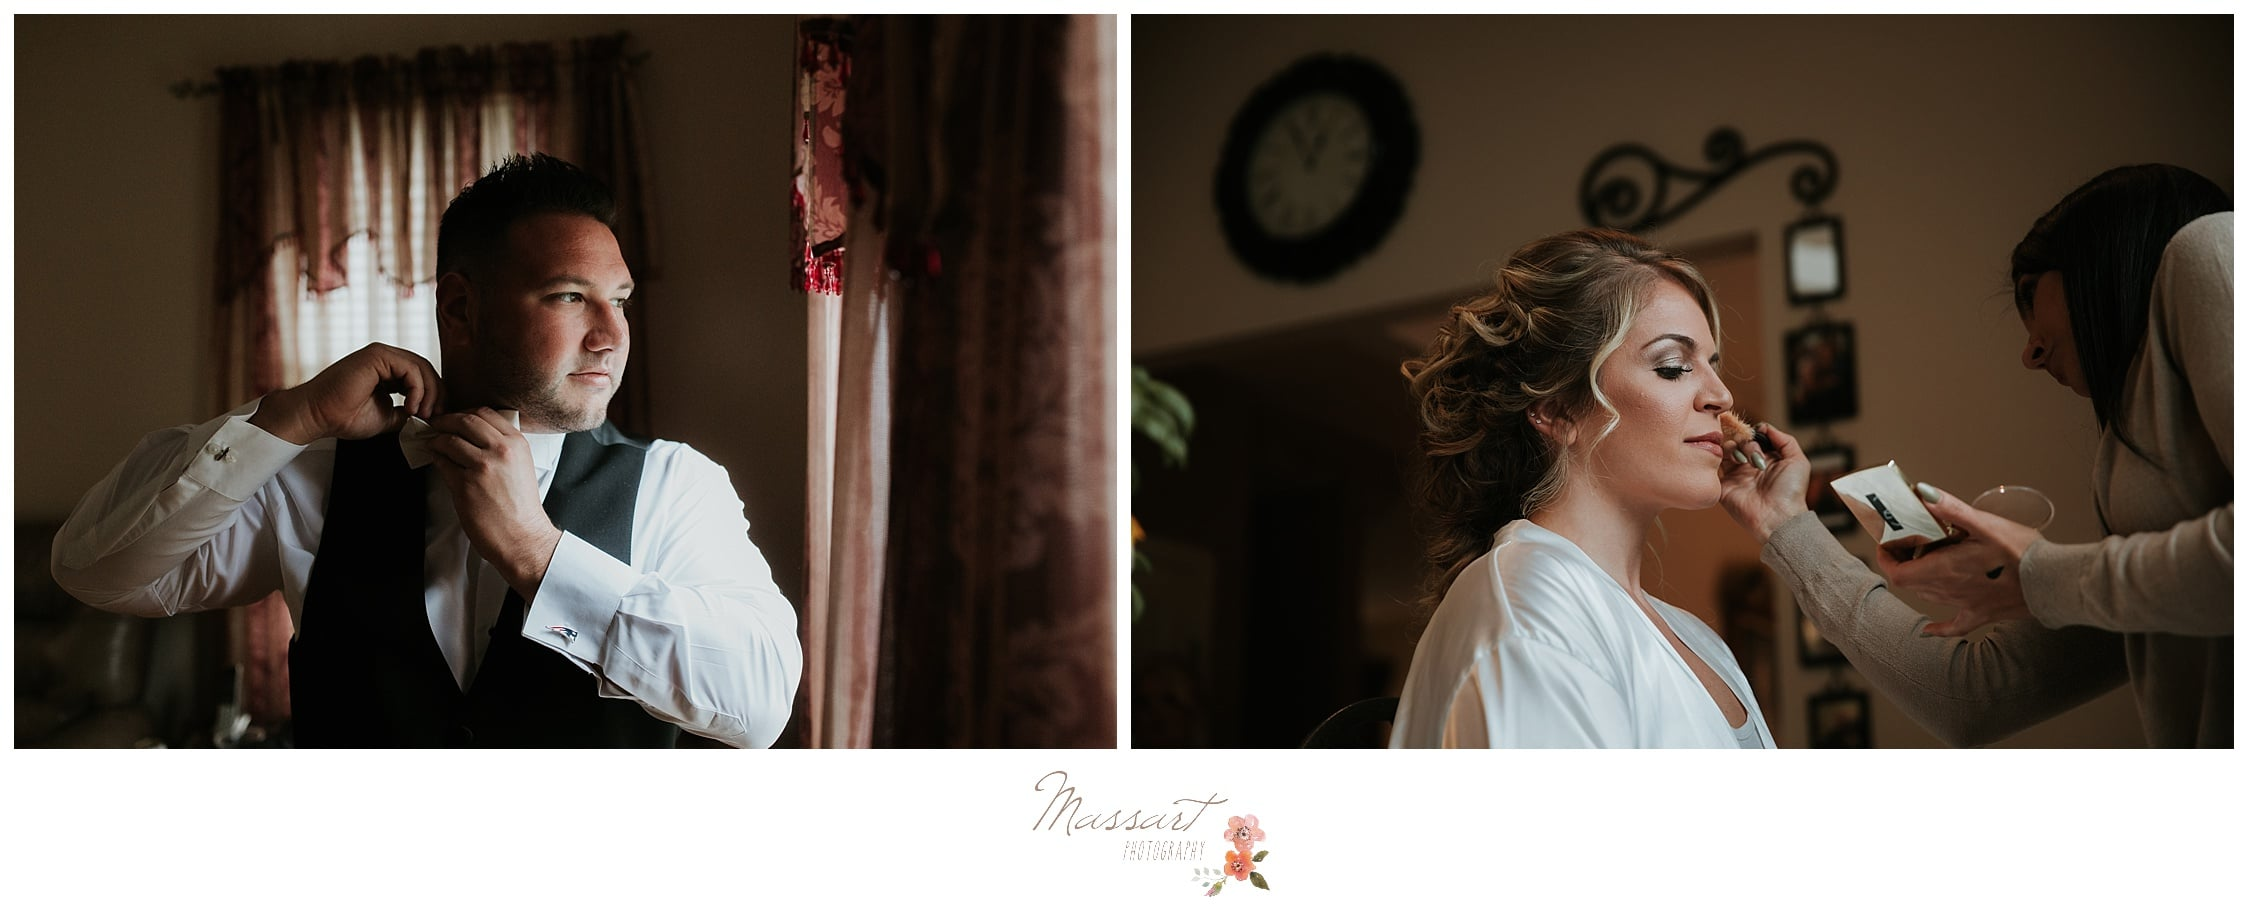 The bride and groom get ready for their Biltmore wedding photographed by Massart Photography Rhode Island